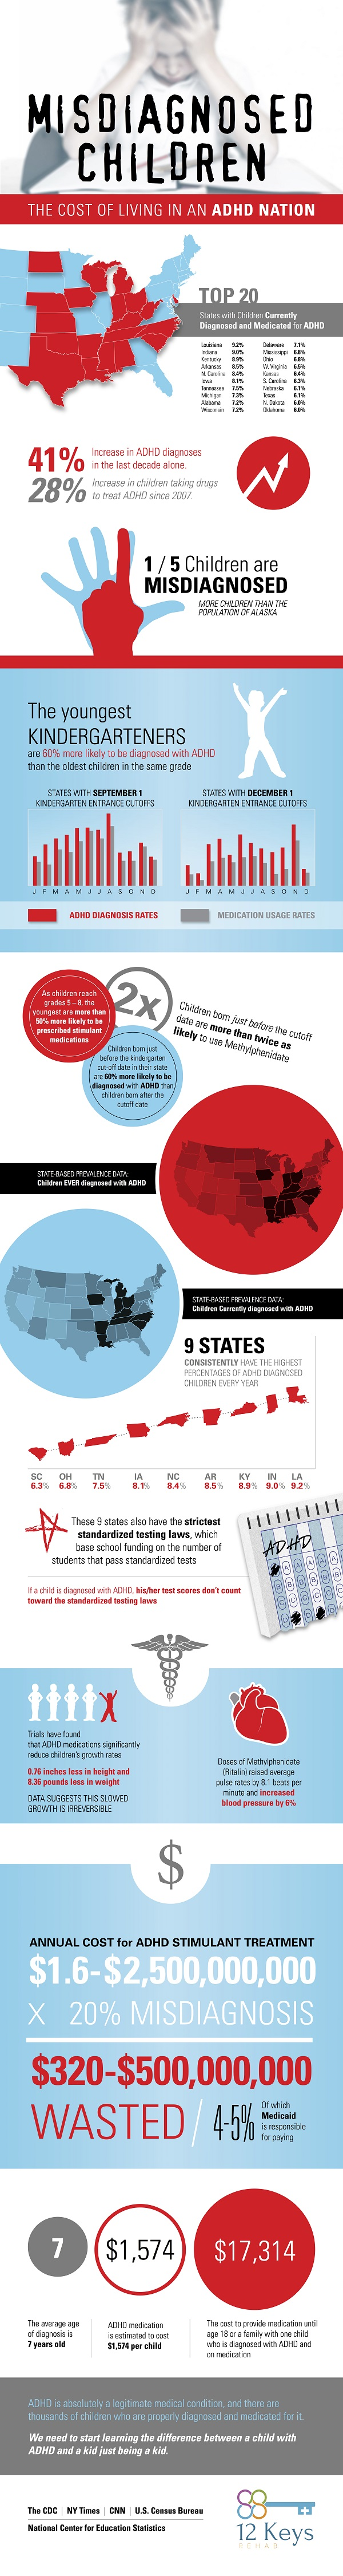 ADHD Nation infographic